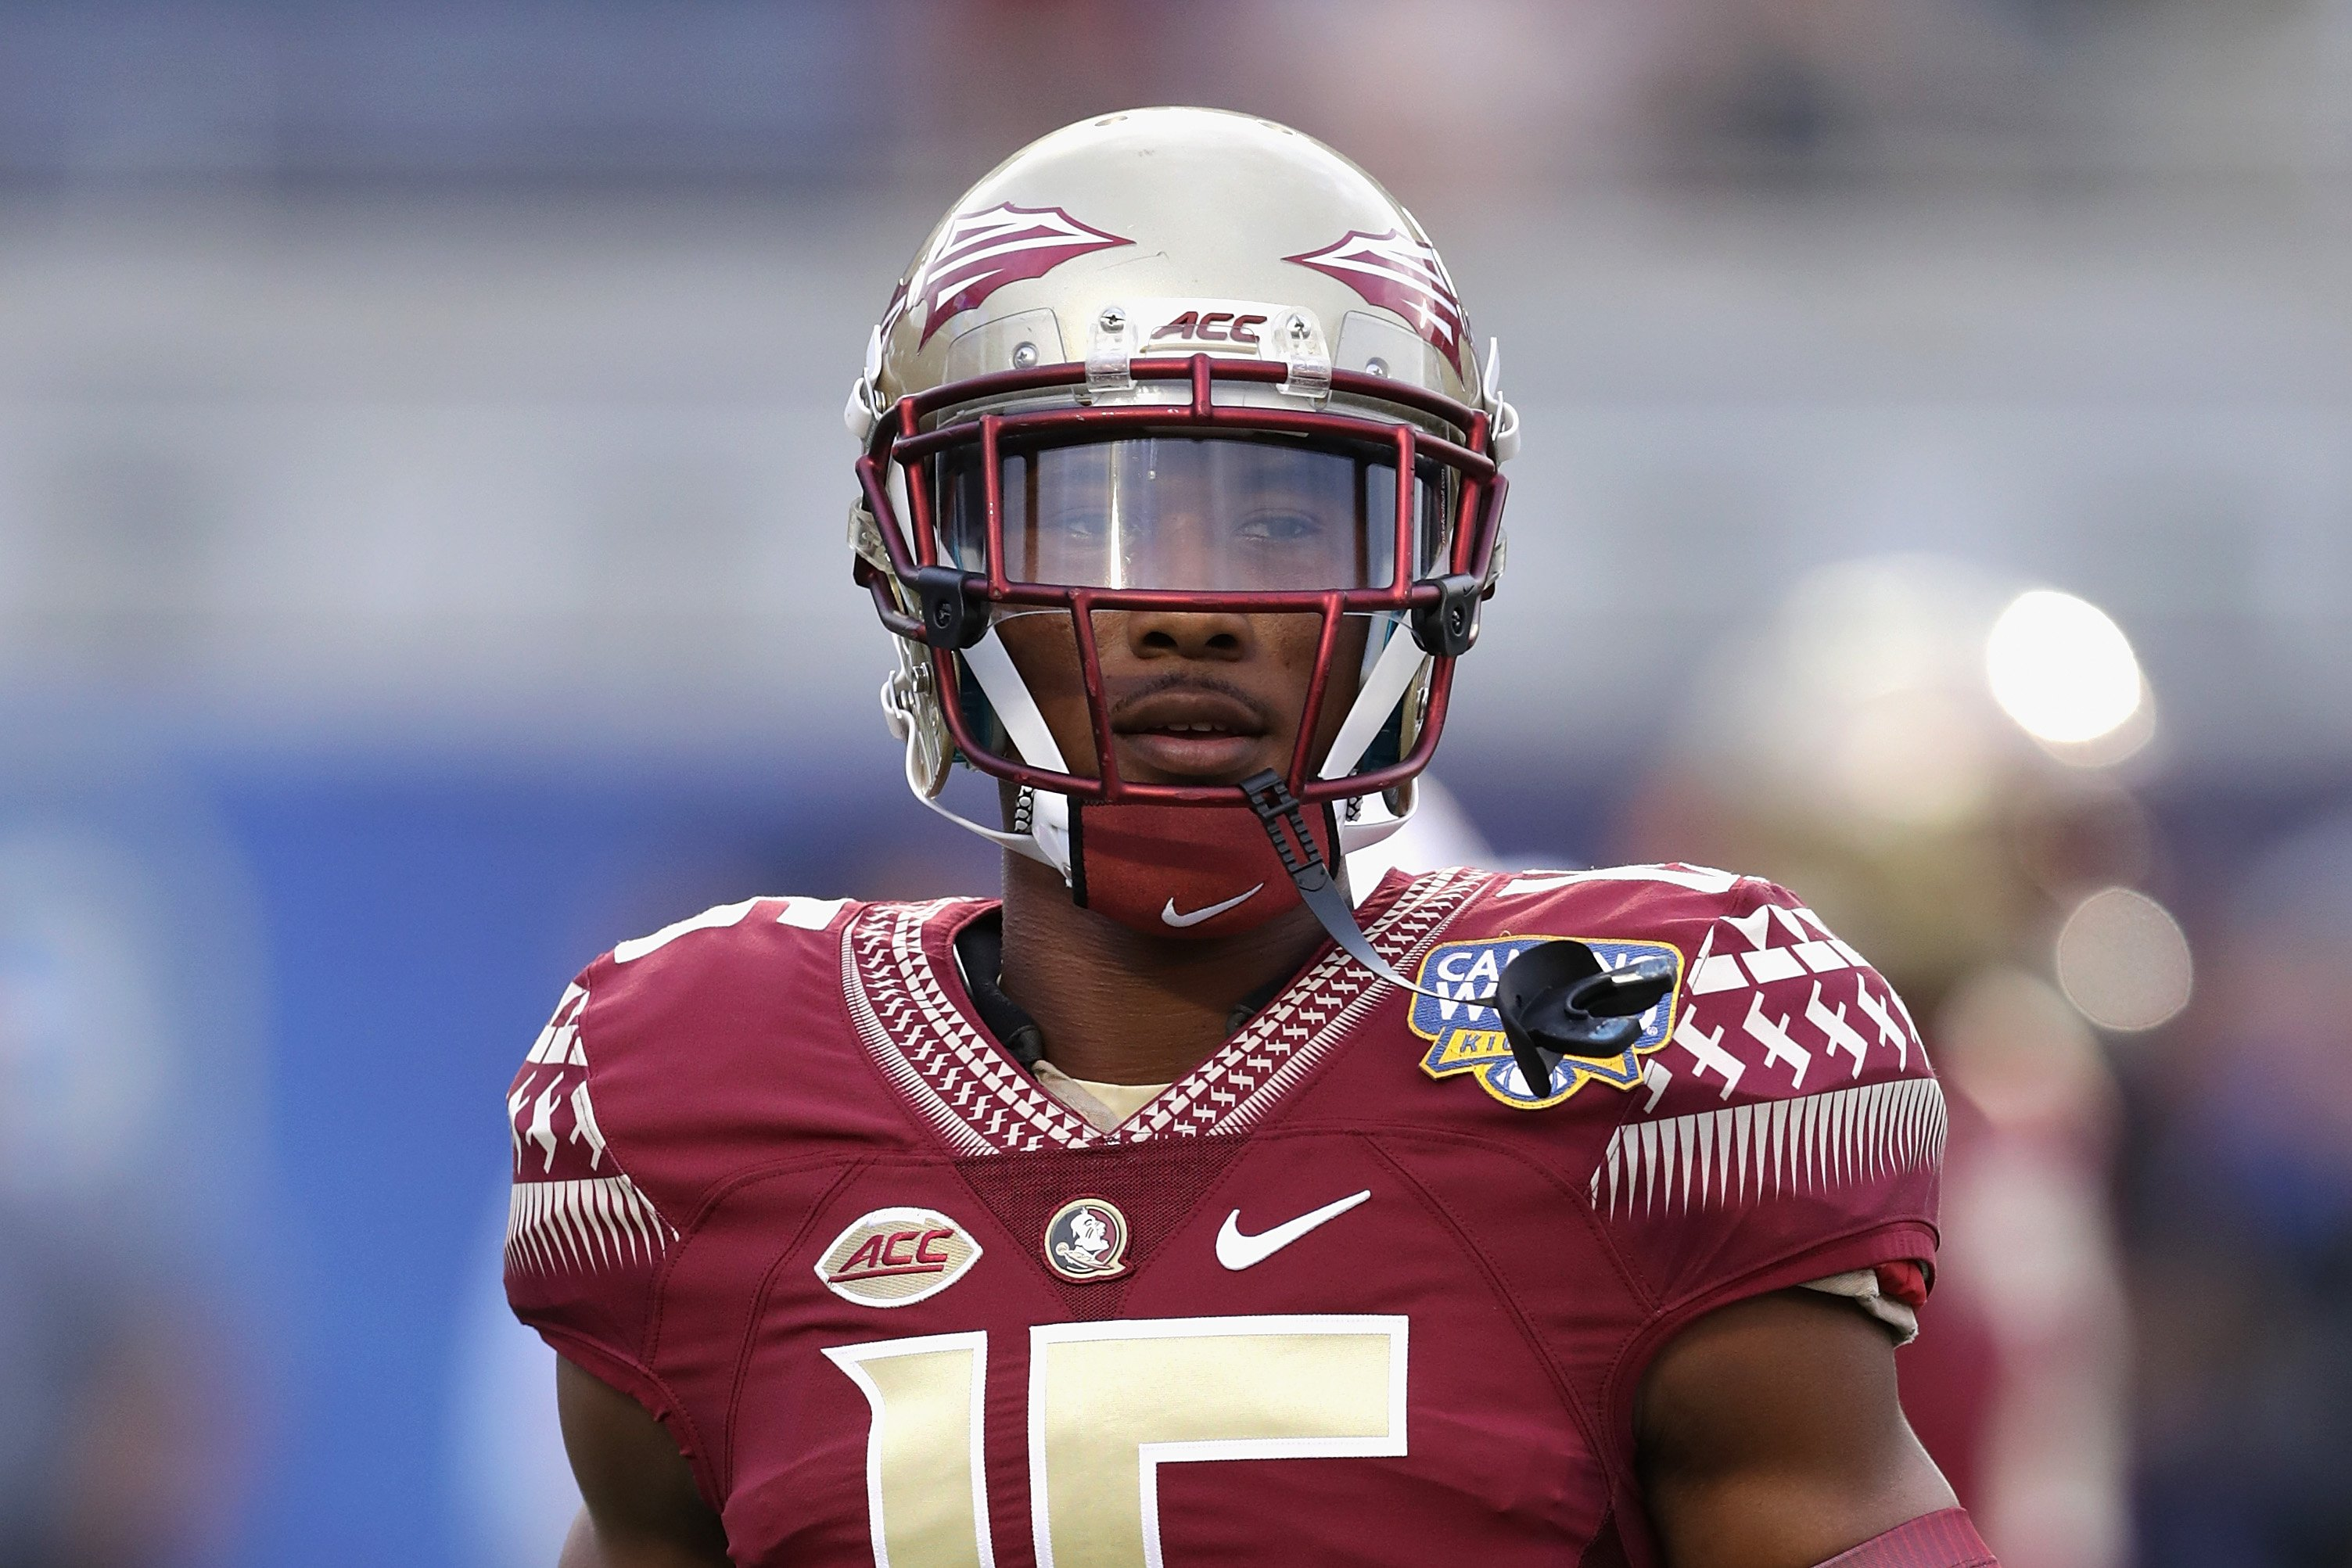 Travis Rudolph during a Florida State Seminoles game against the Mississippi Rebels on September 5, 2016 in Orlando, Florida. | Source: Getty Images